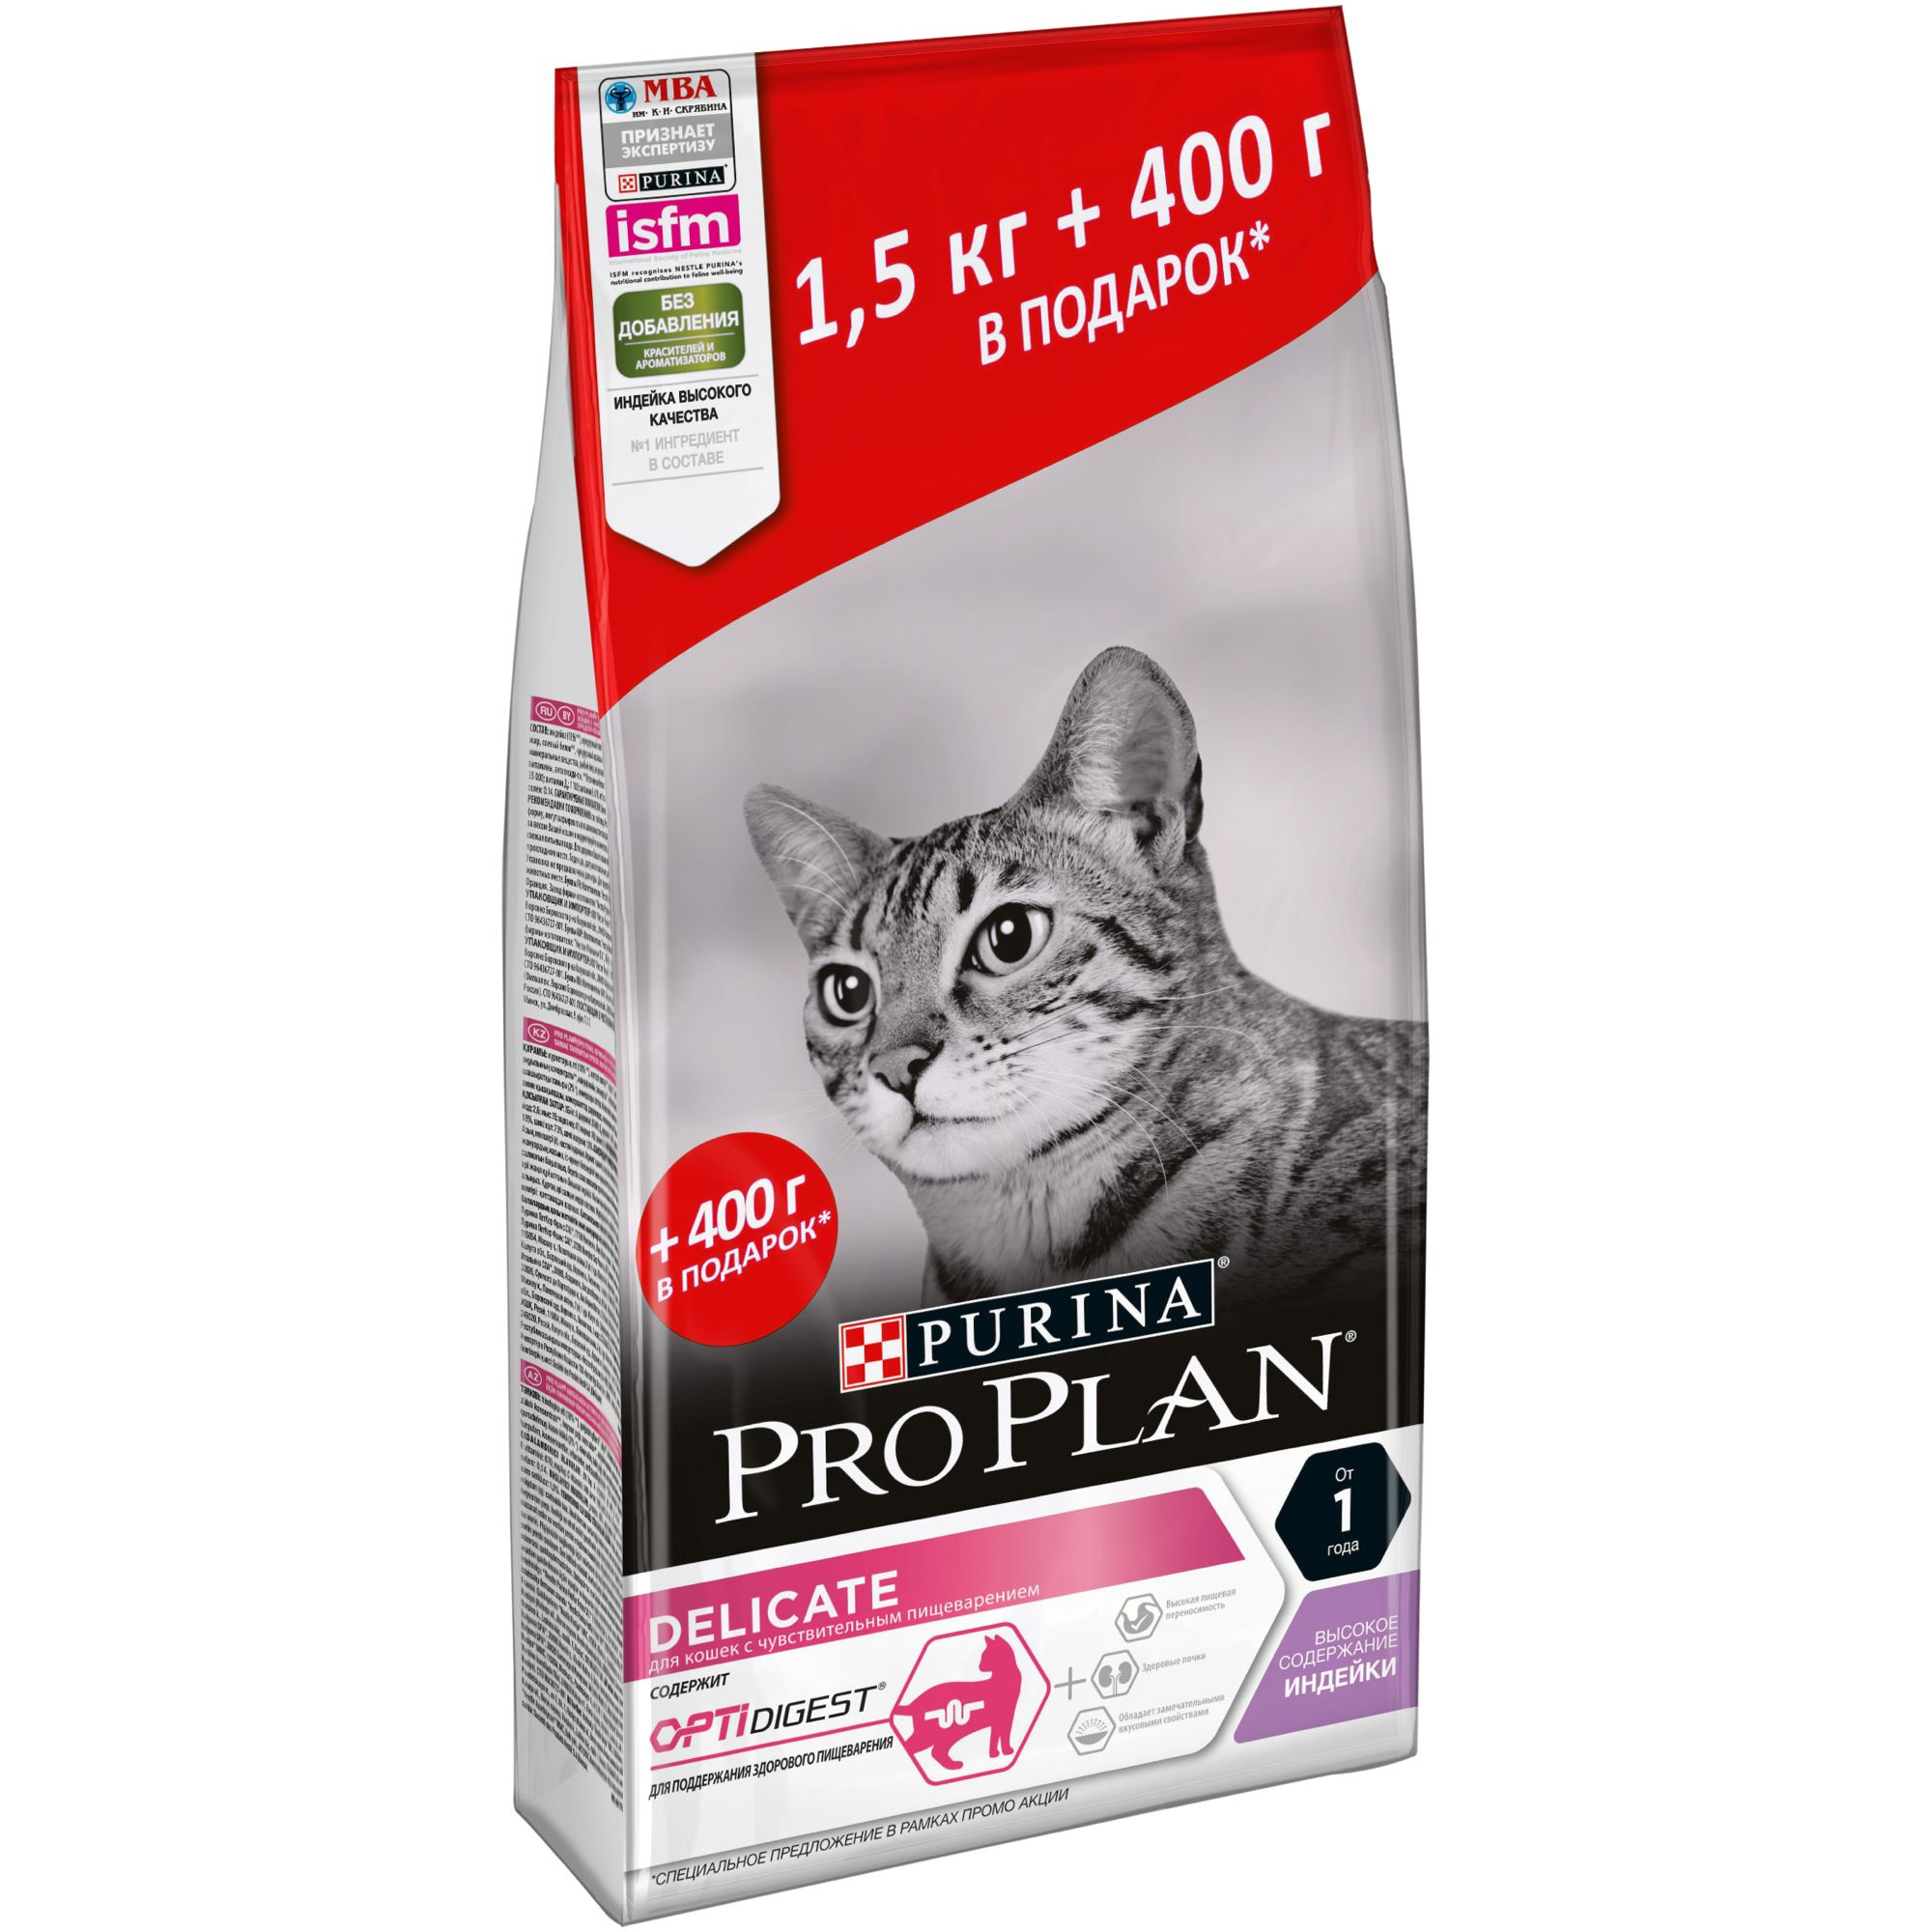 Promopak set: Pro Plan dry food for cats with sensitive digestion and choosy for food, turkey, 6 pcs. x 1.9 kg цена